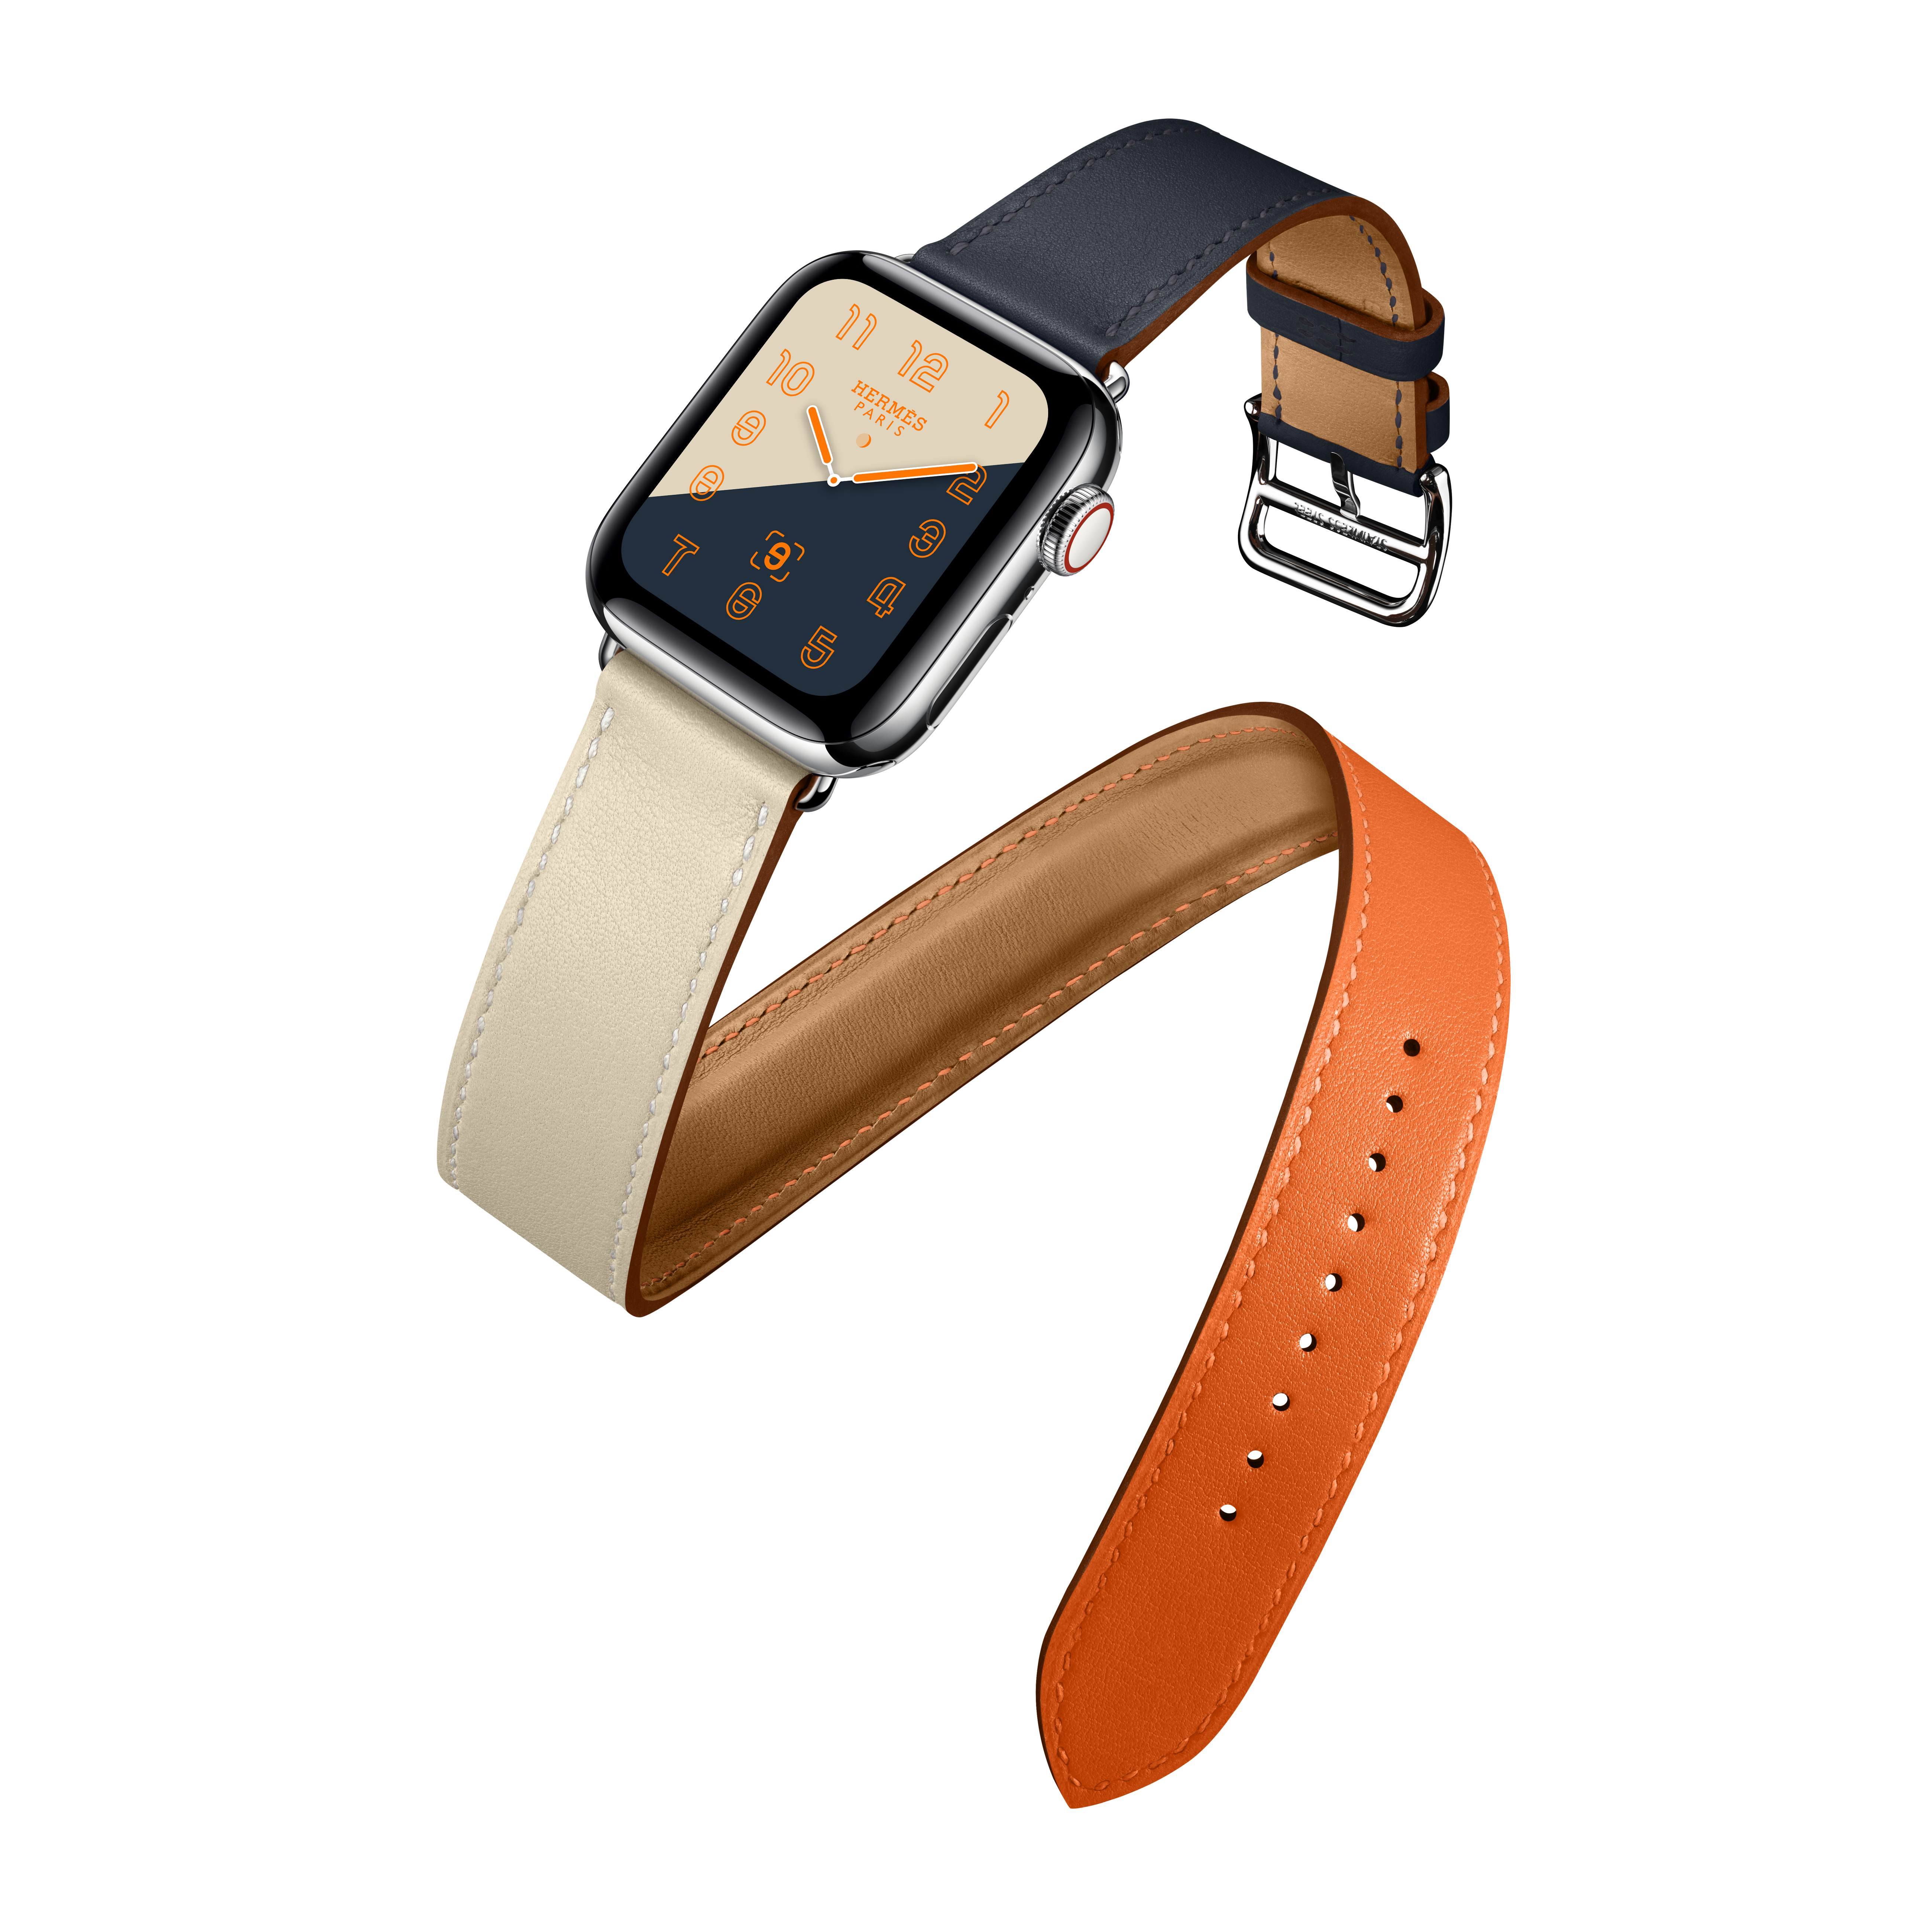 ad8d696af 5 luxury straps for your Apple Watch that will make you stand out from the  crowd